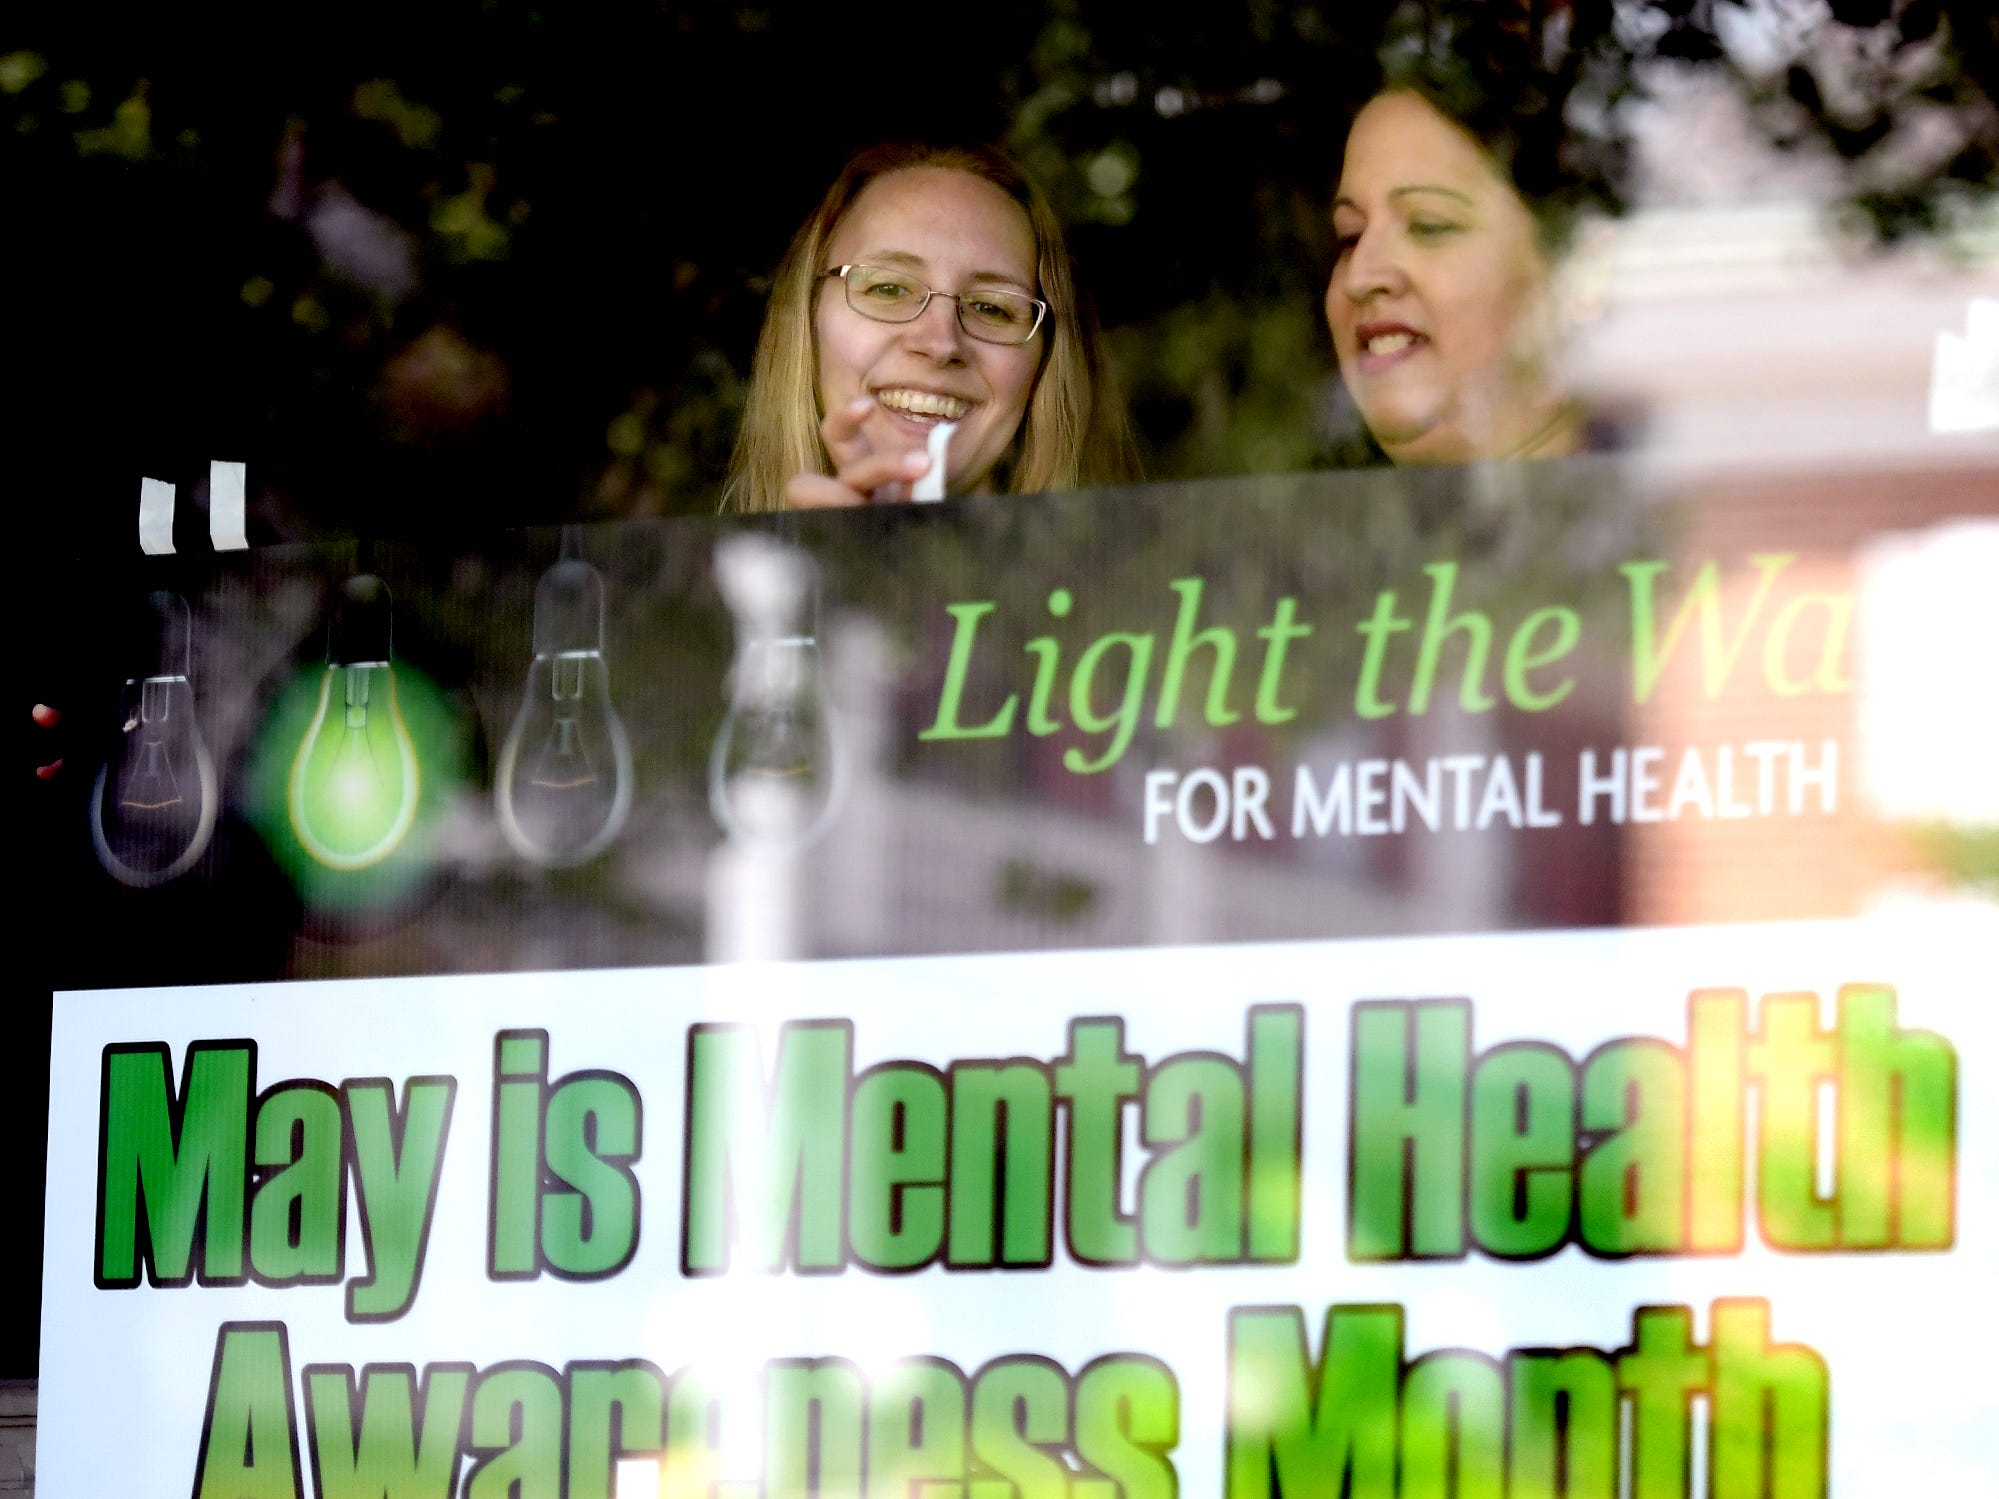 York County Human Services employees Nikki Miller, left, and Pam Bhalla hang a sign before the Walk To Raise Awareness About Mental Health in York City Monday, May 6, 2019. The York County System of Care in collaboration with York County Human Services sponsored the walk during Mental Health Awareness Month. Area business and organizations will be displaying green lighting through May 12th to show support. Bill Kalina photo